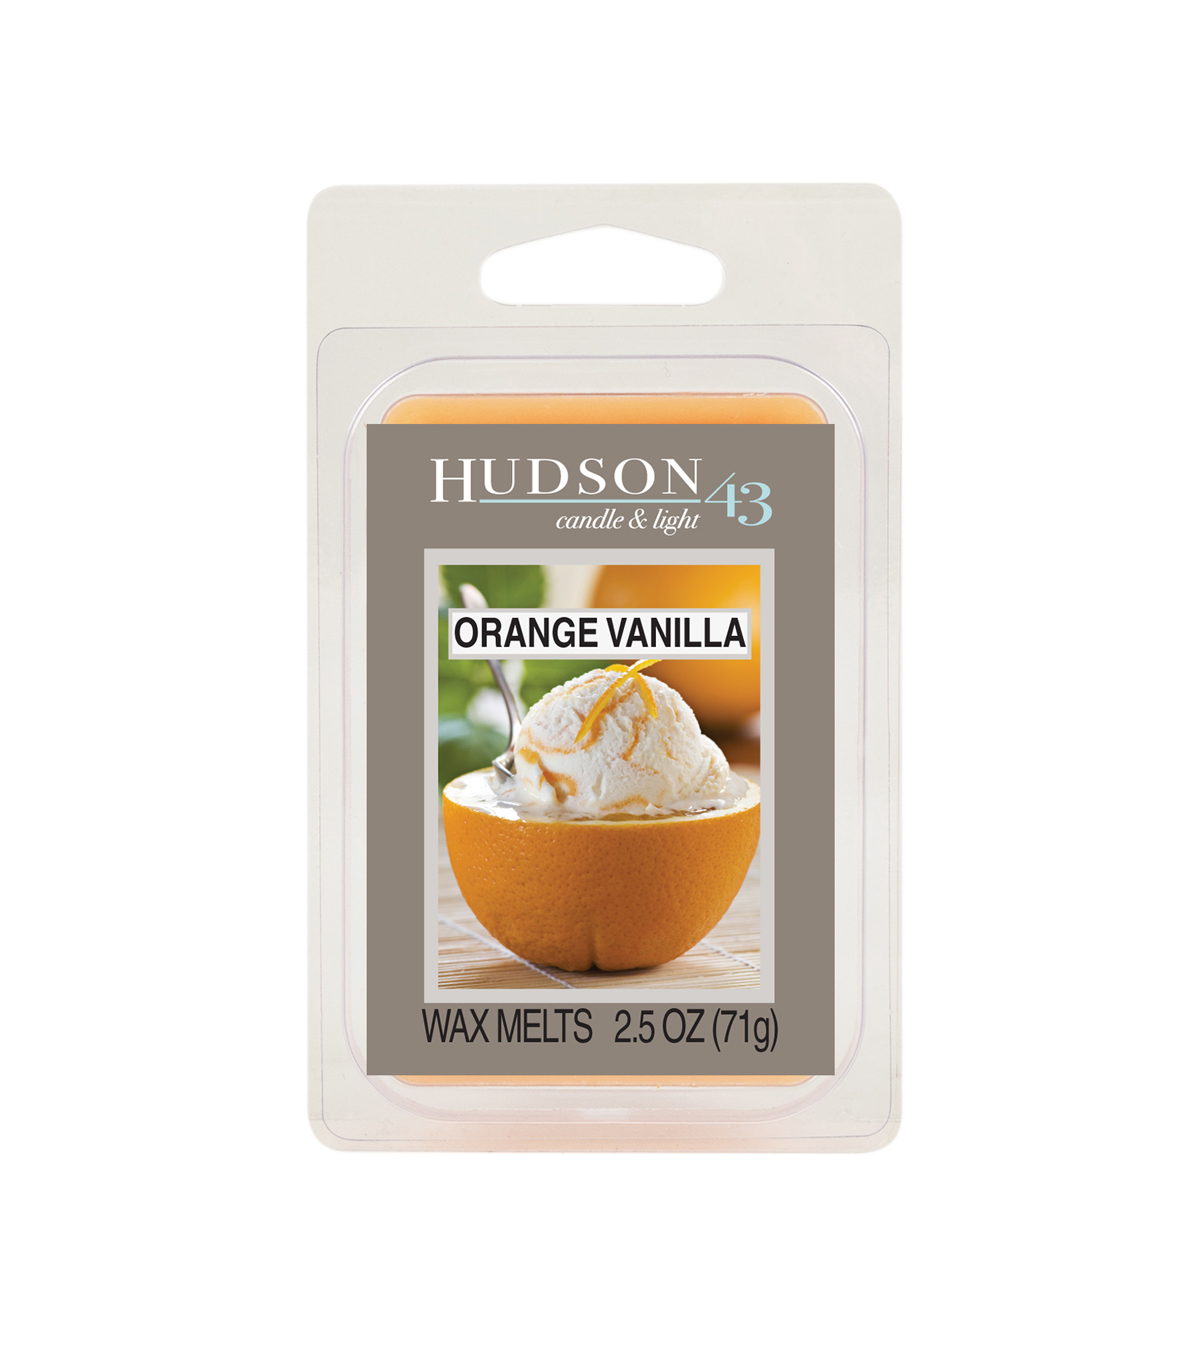 Hudson 43™ Candle & Light Collection Wax Melt-Orange Vanilla